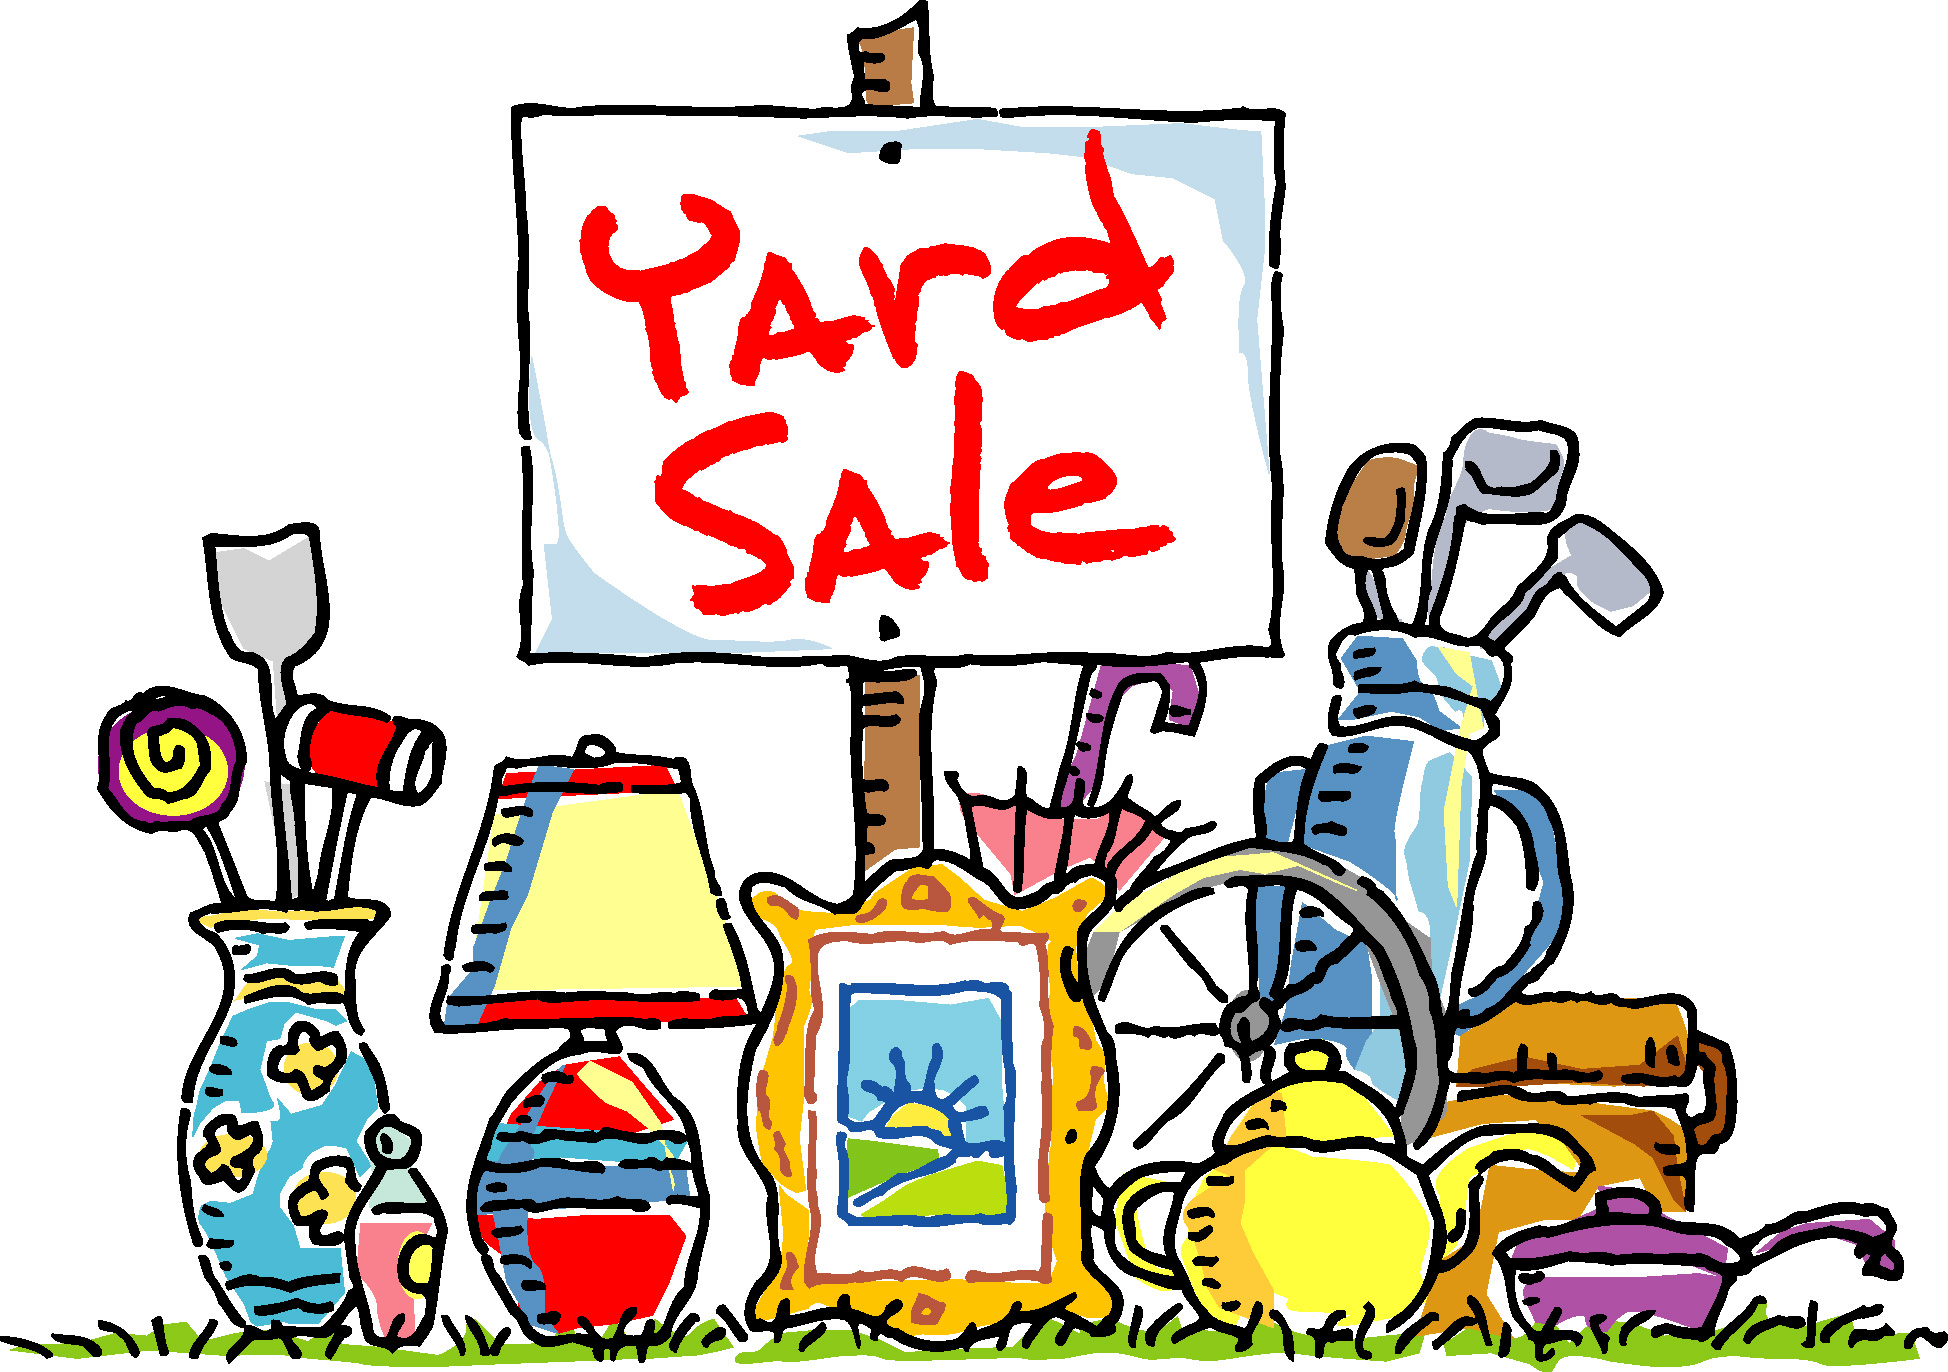 Garage Art Nz Free Garage Sale Images Download Free Clip Art Free Clip Art On